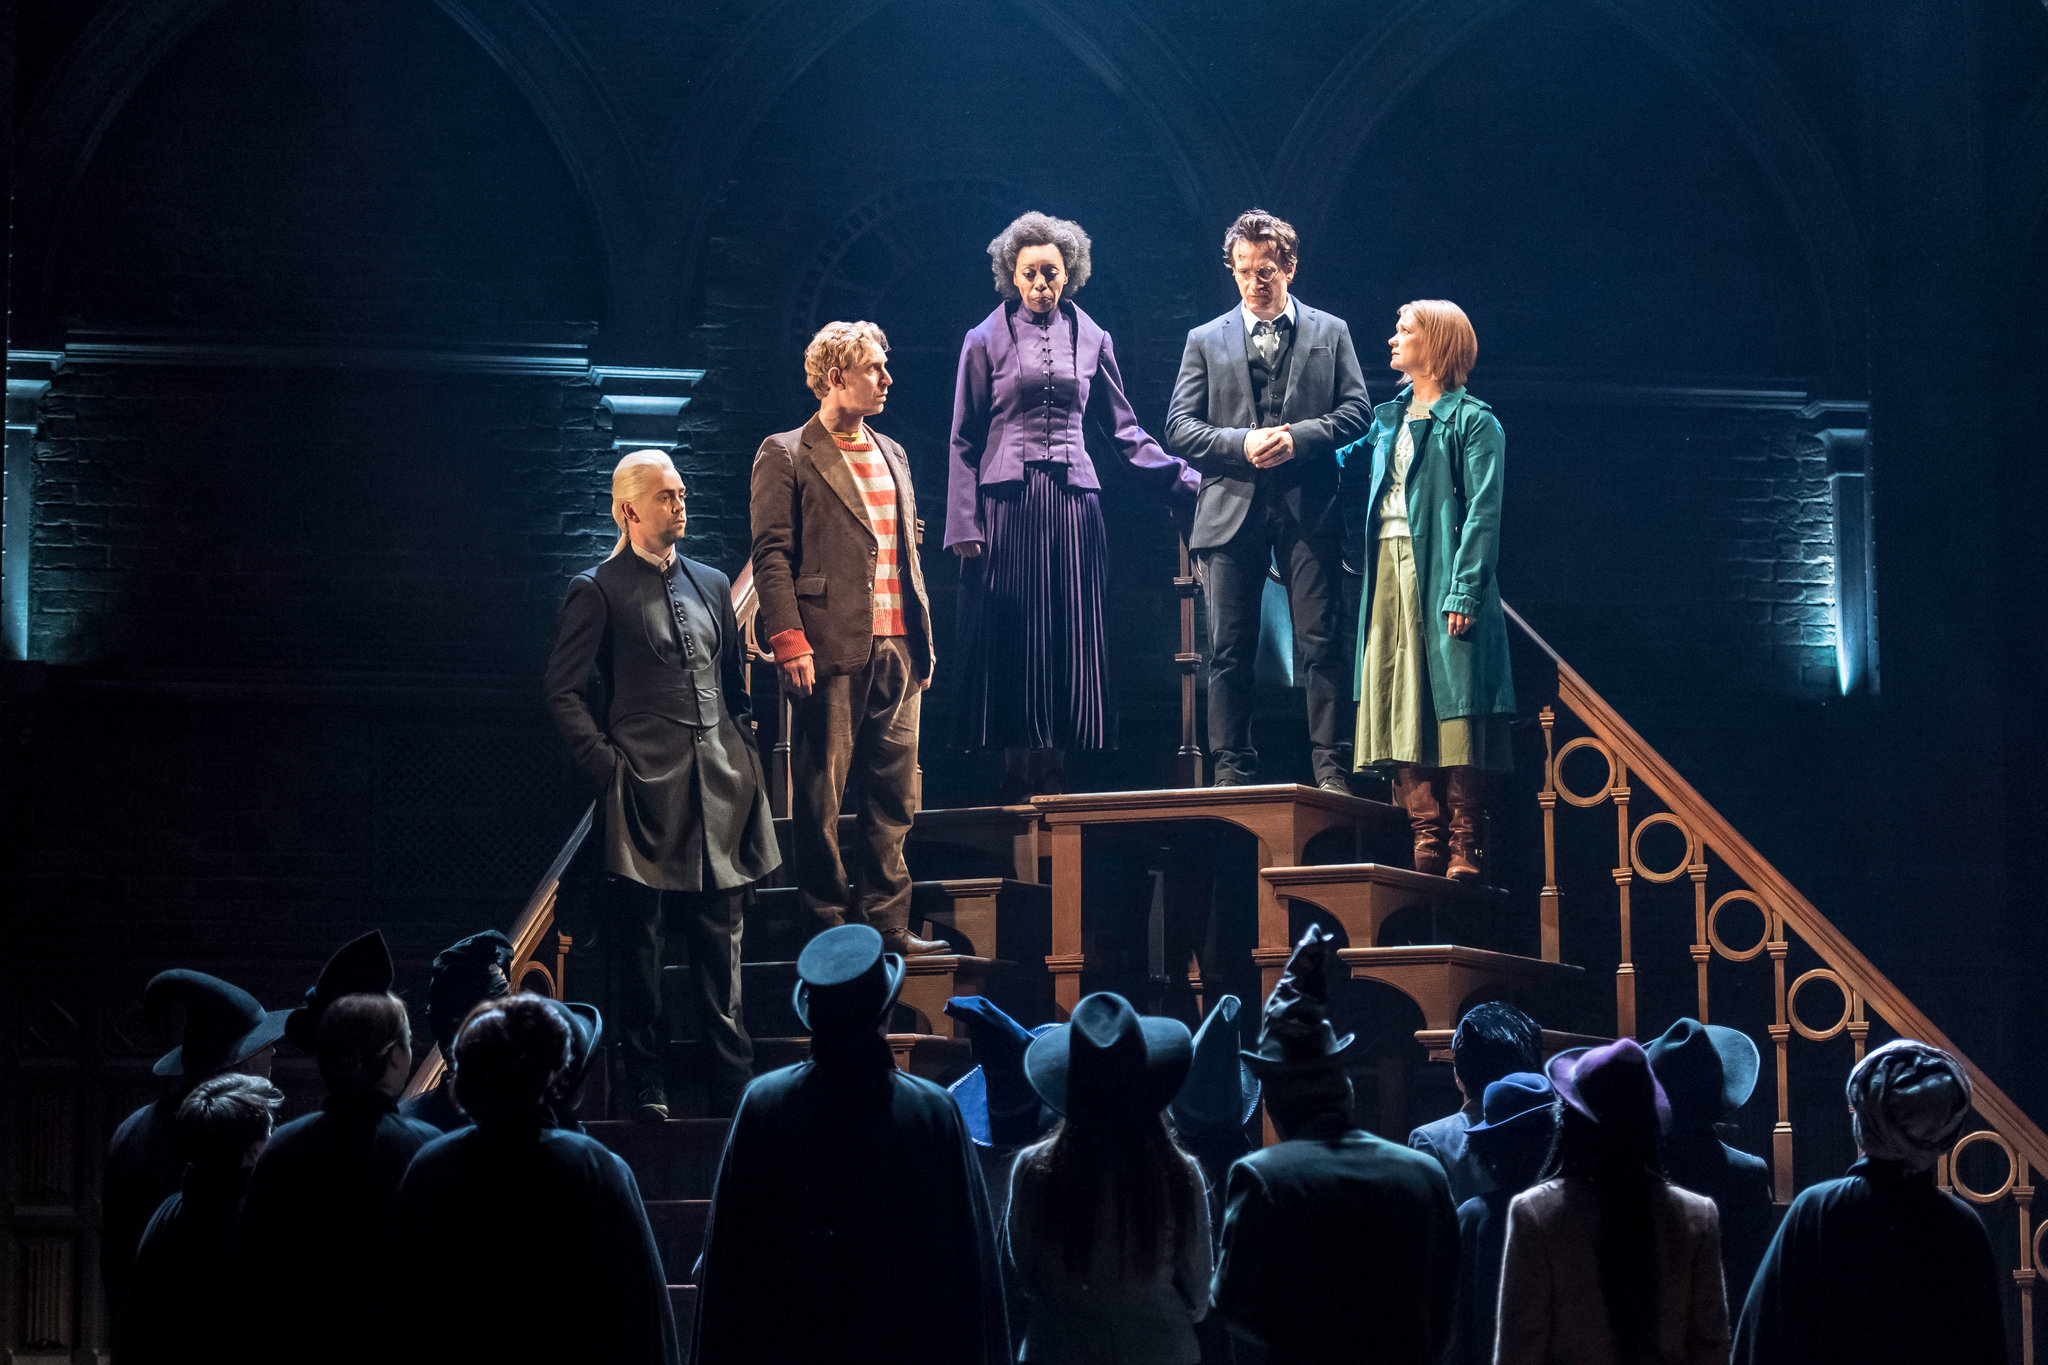 Harry Potter and The Cursed Child - Part 1 at Lyric Theatre